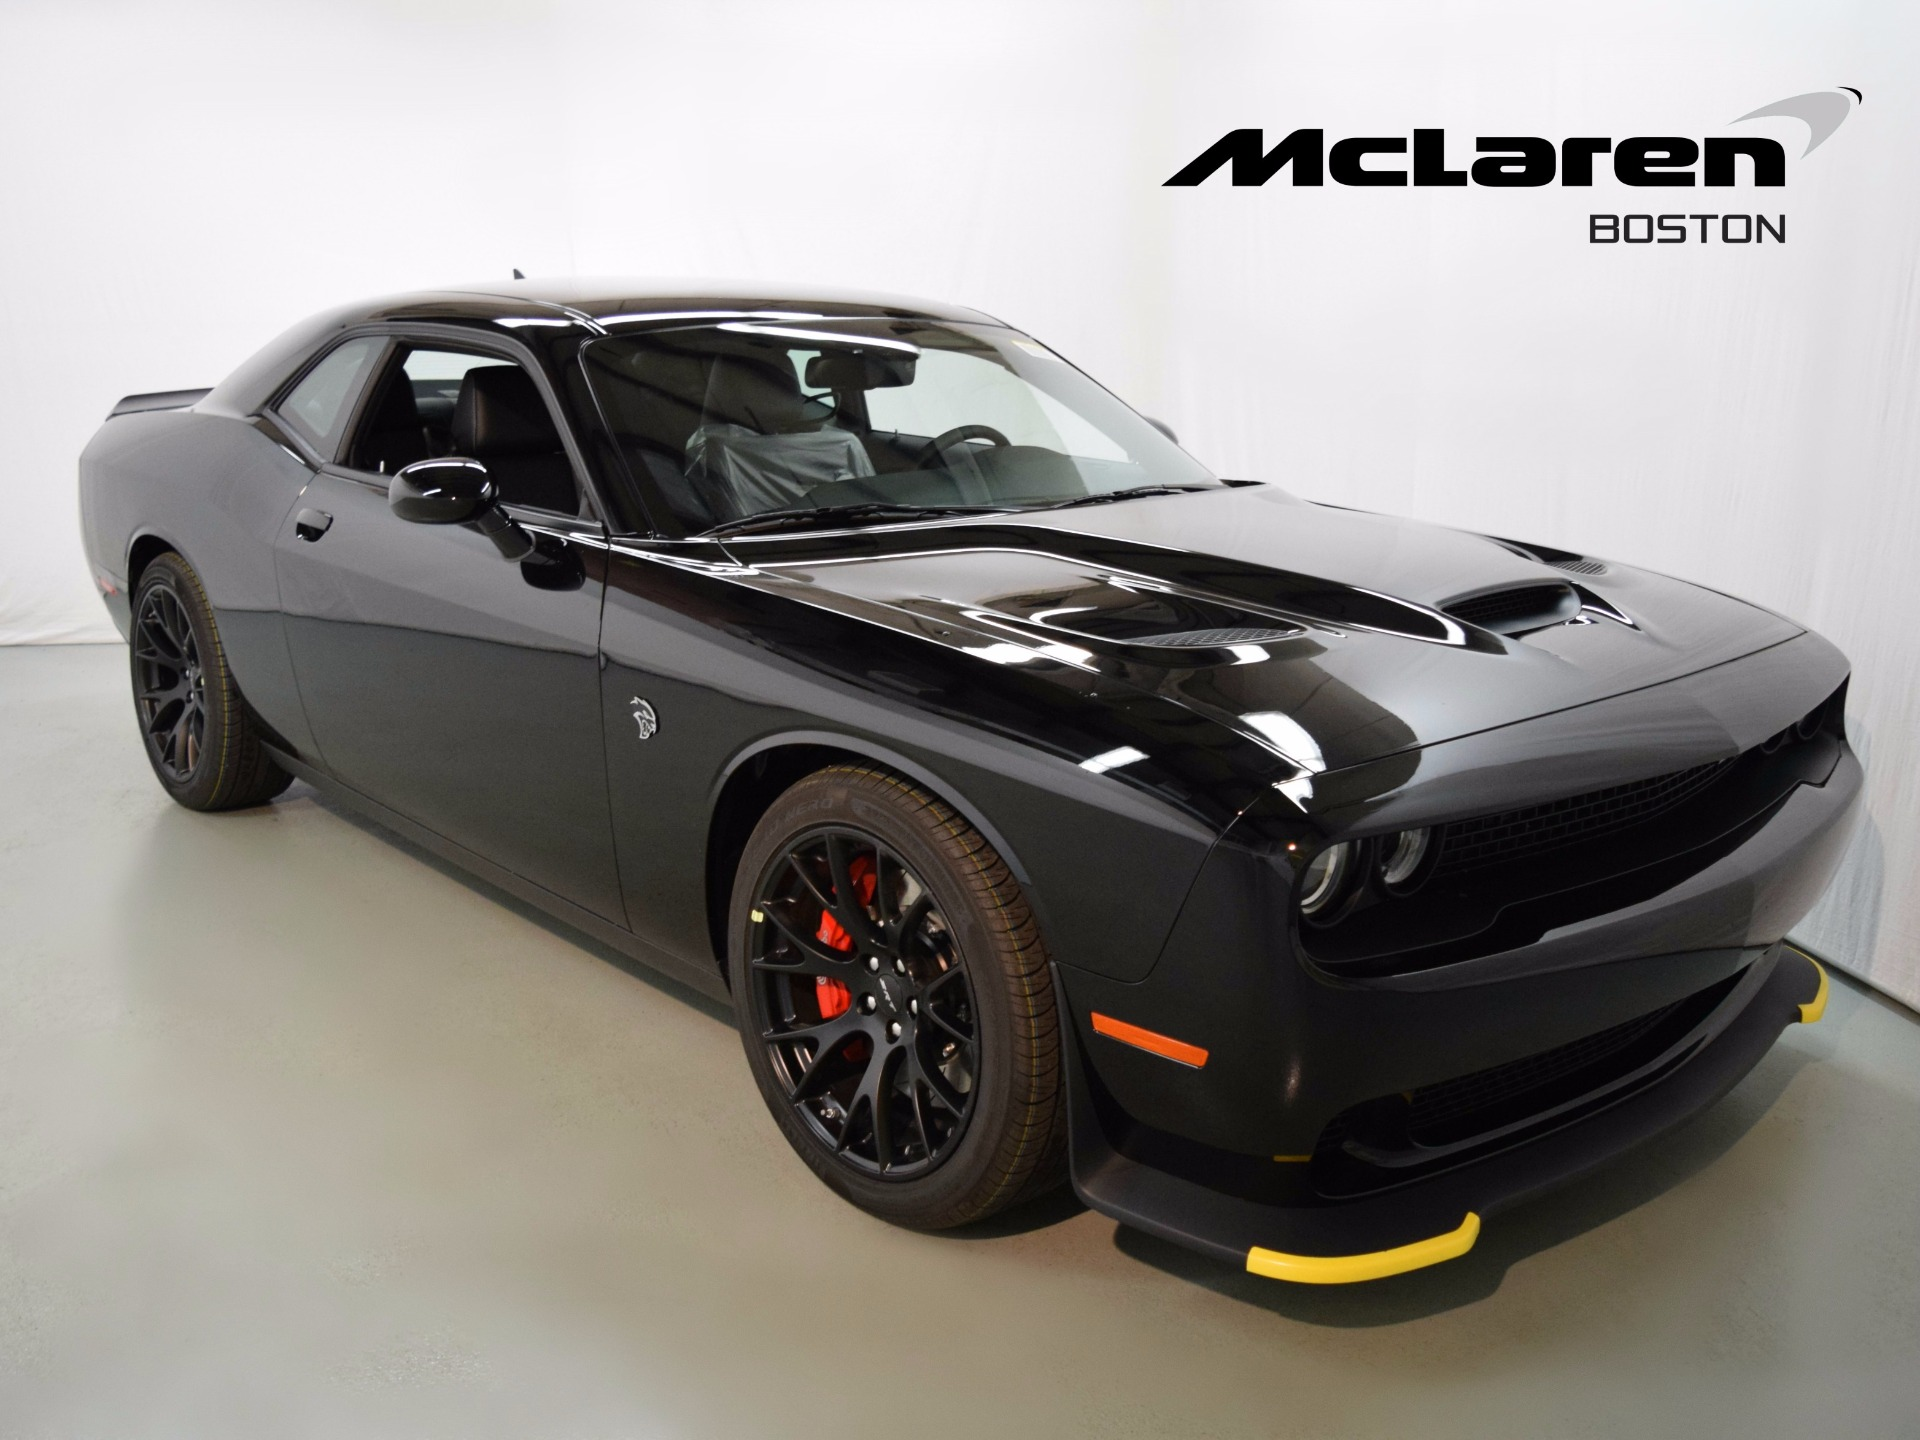 2016 dodge challenger srt hellcat for sale in norwell ma 199543 mclaren boston. Black Bedroom Furniture Sets. Home Design Ideas